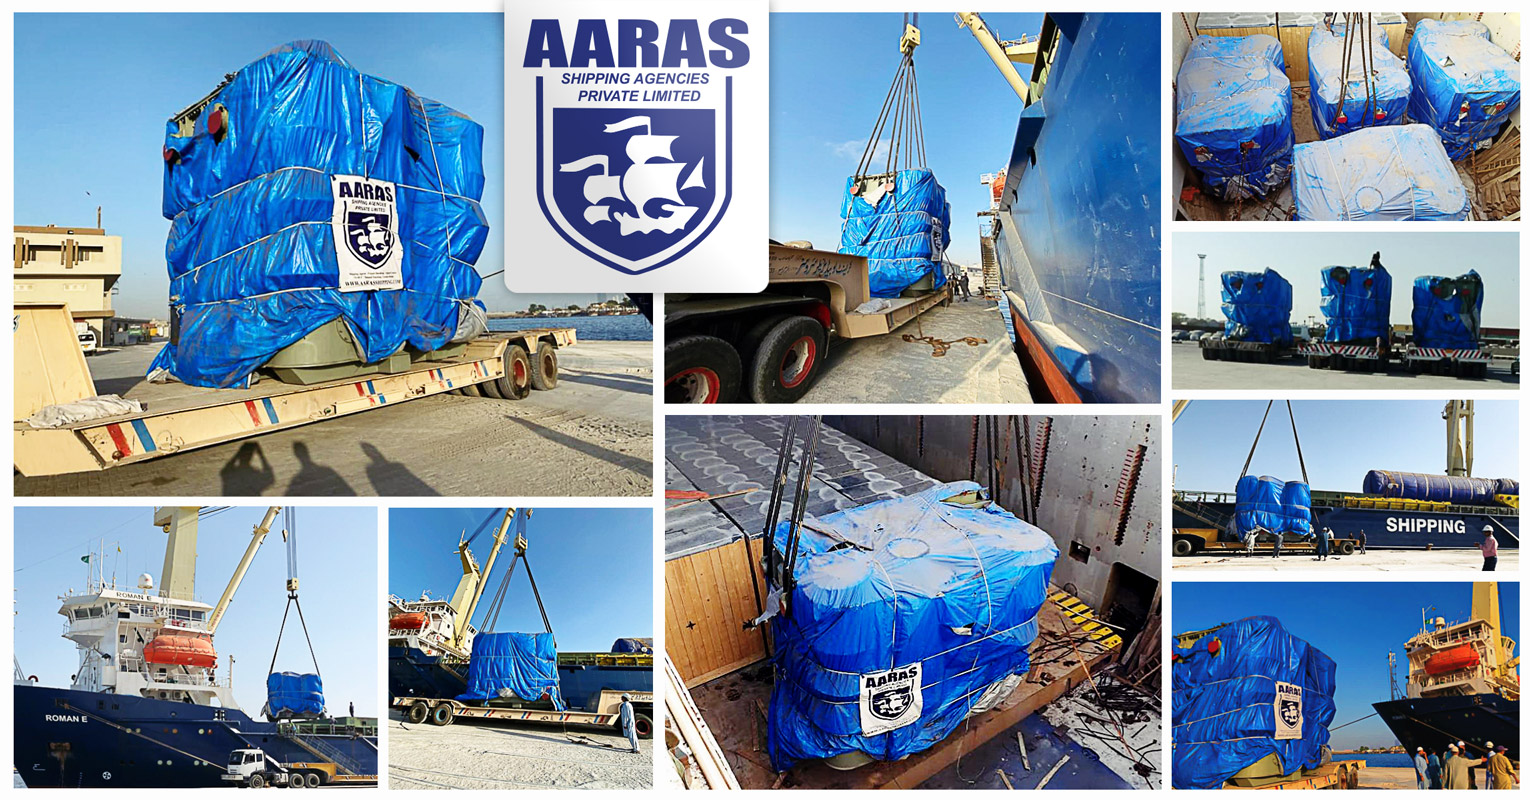 MV ROMAN E Discharged Four Heavy Units of 102 Tons Transformers under AARAS Agency at Karachi Port (West Wharf)